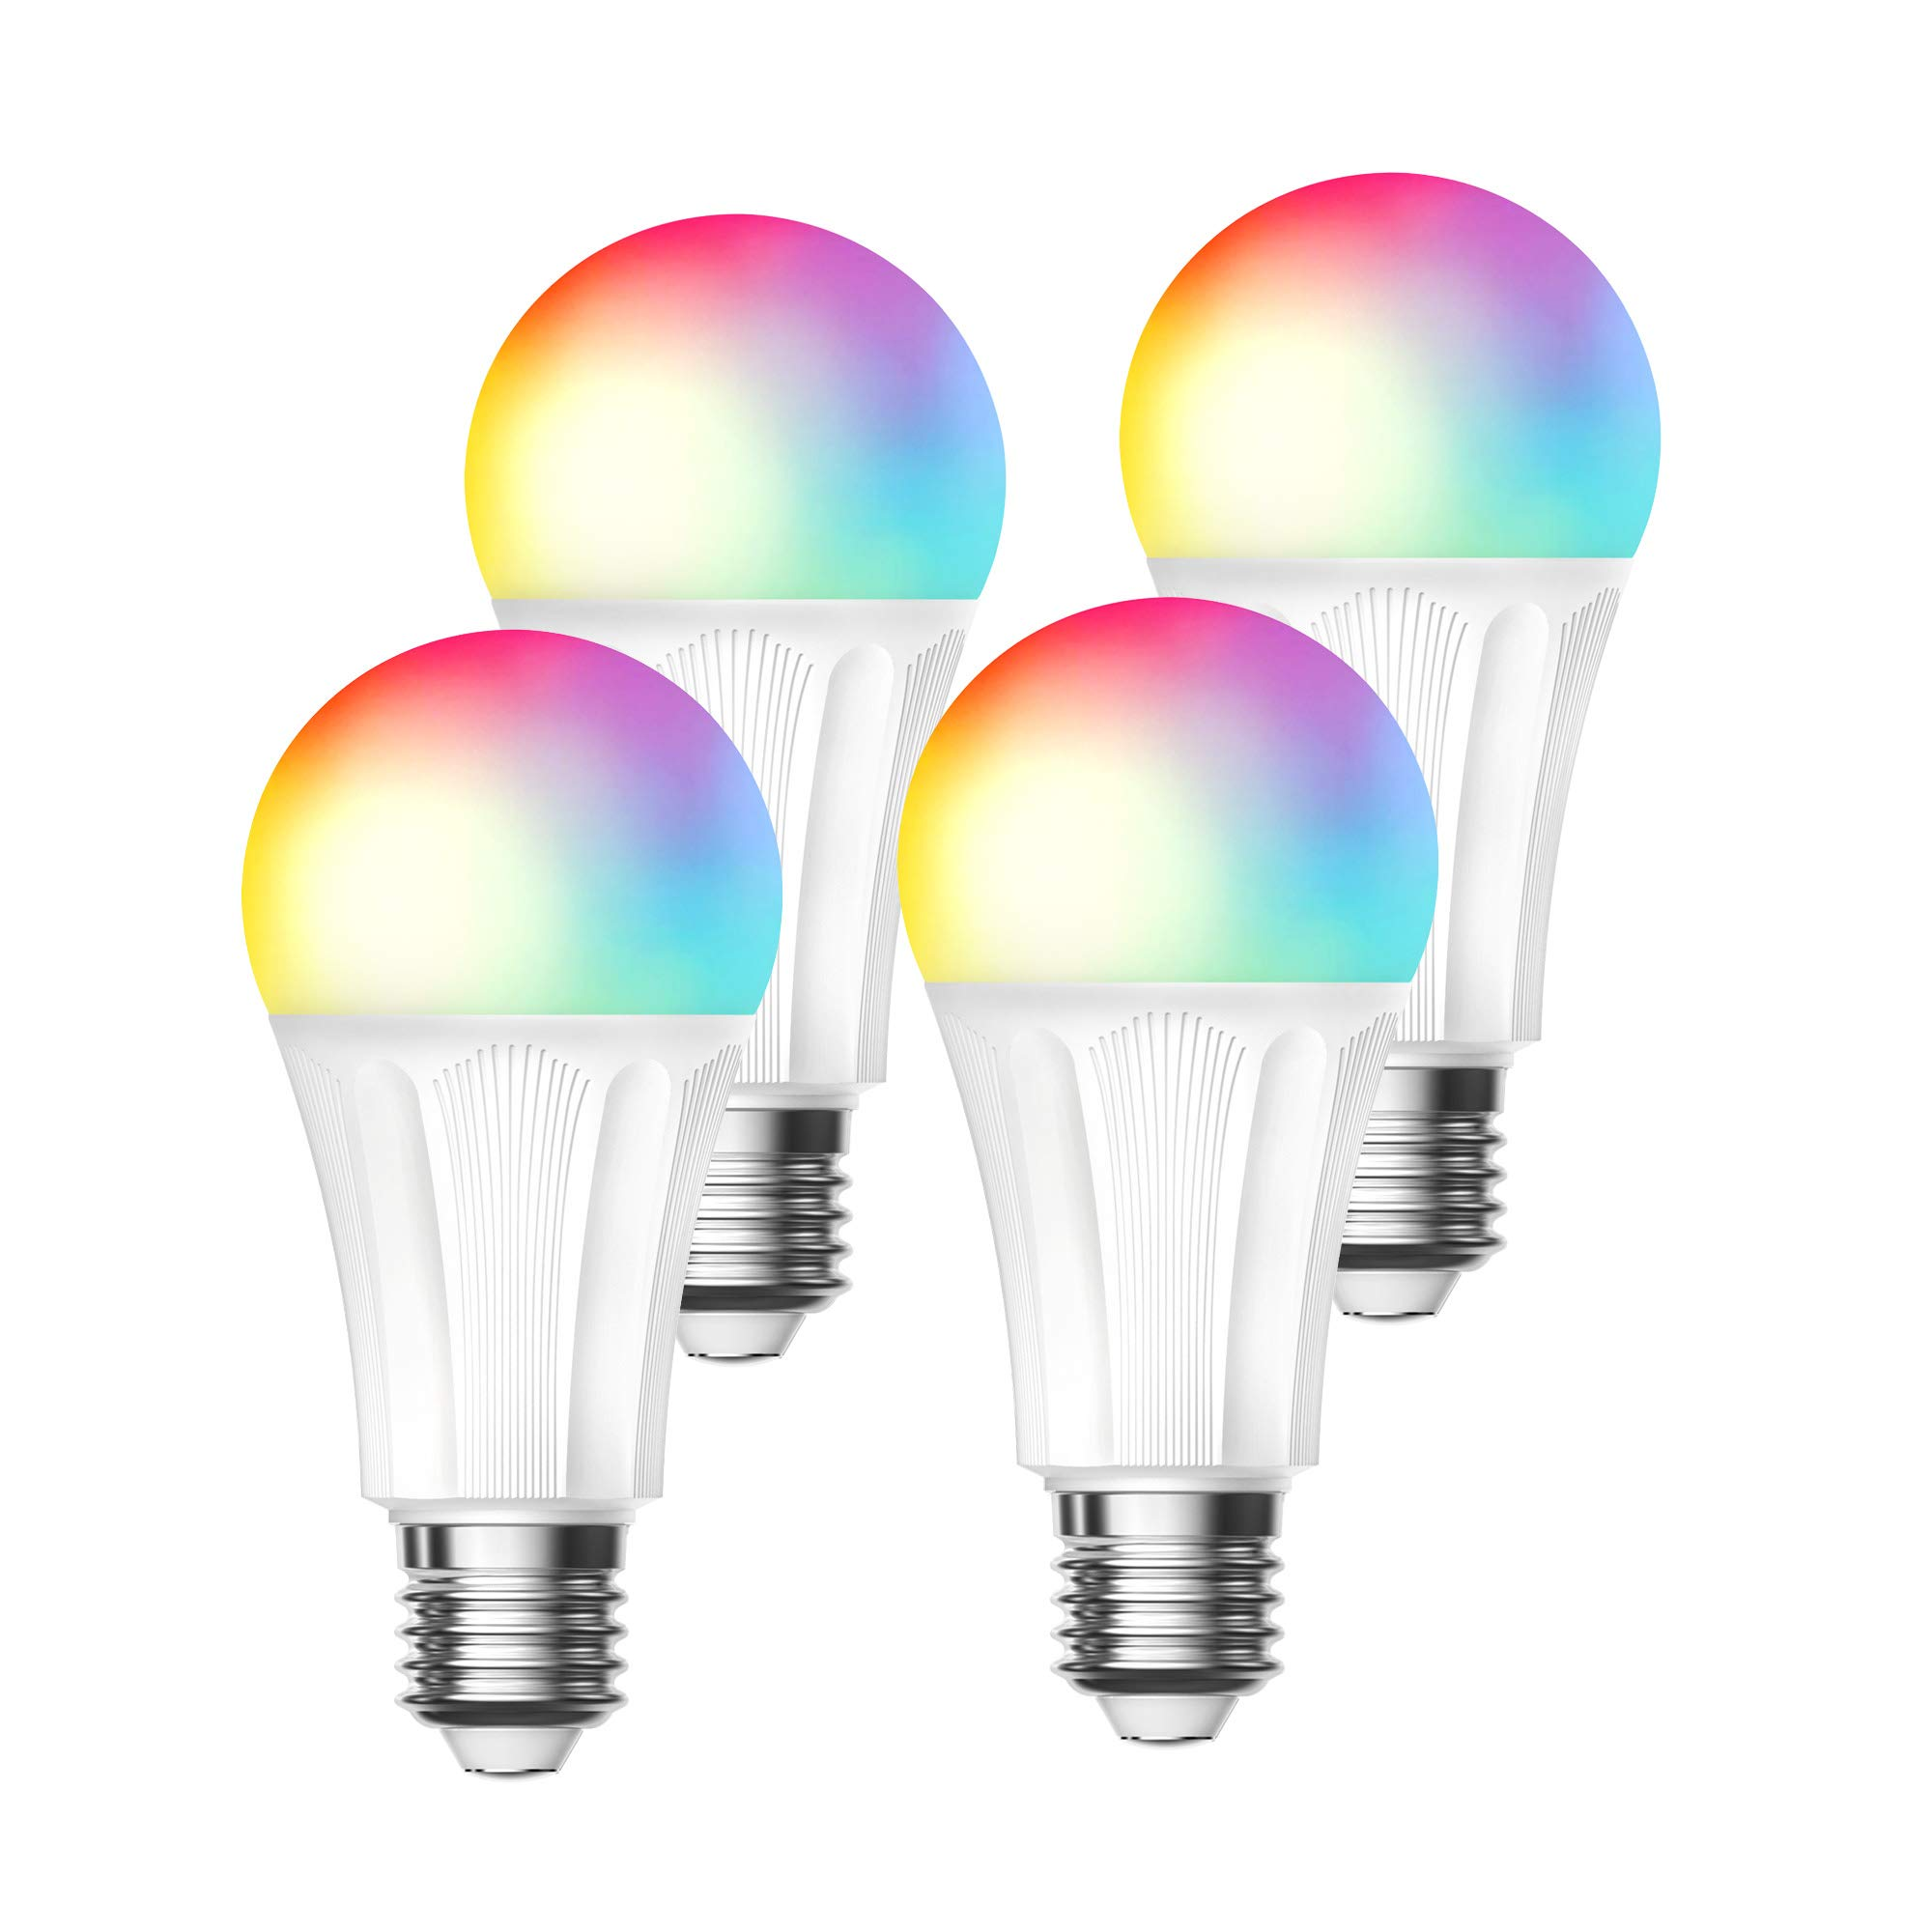 Led Smart Light Bulb,RGBW Color Changing Bulbs 9W,Compatible with Alexa Google Home,No Hub Required,A19 75W Equivalent 4 Pcak Amysen